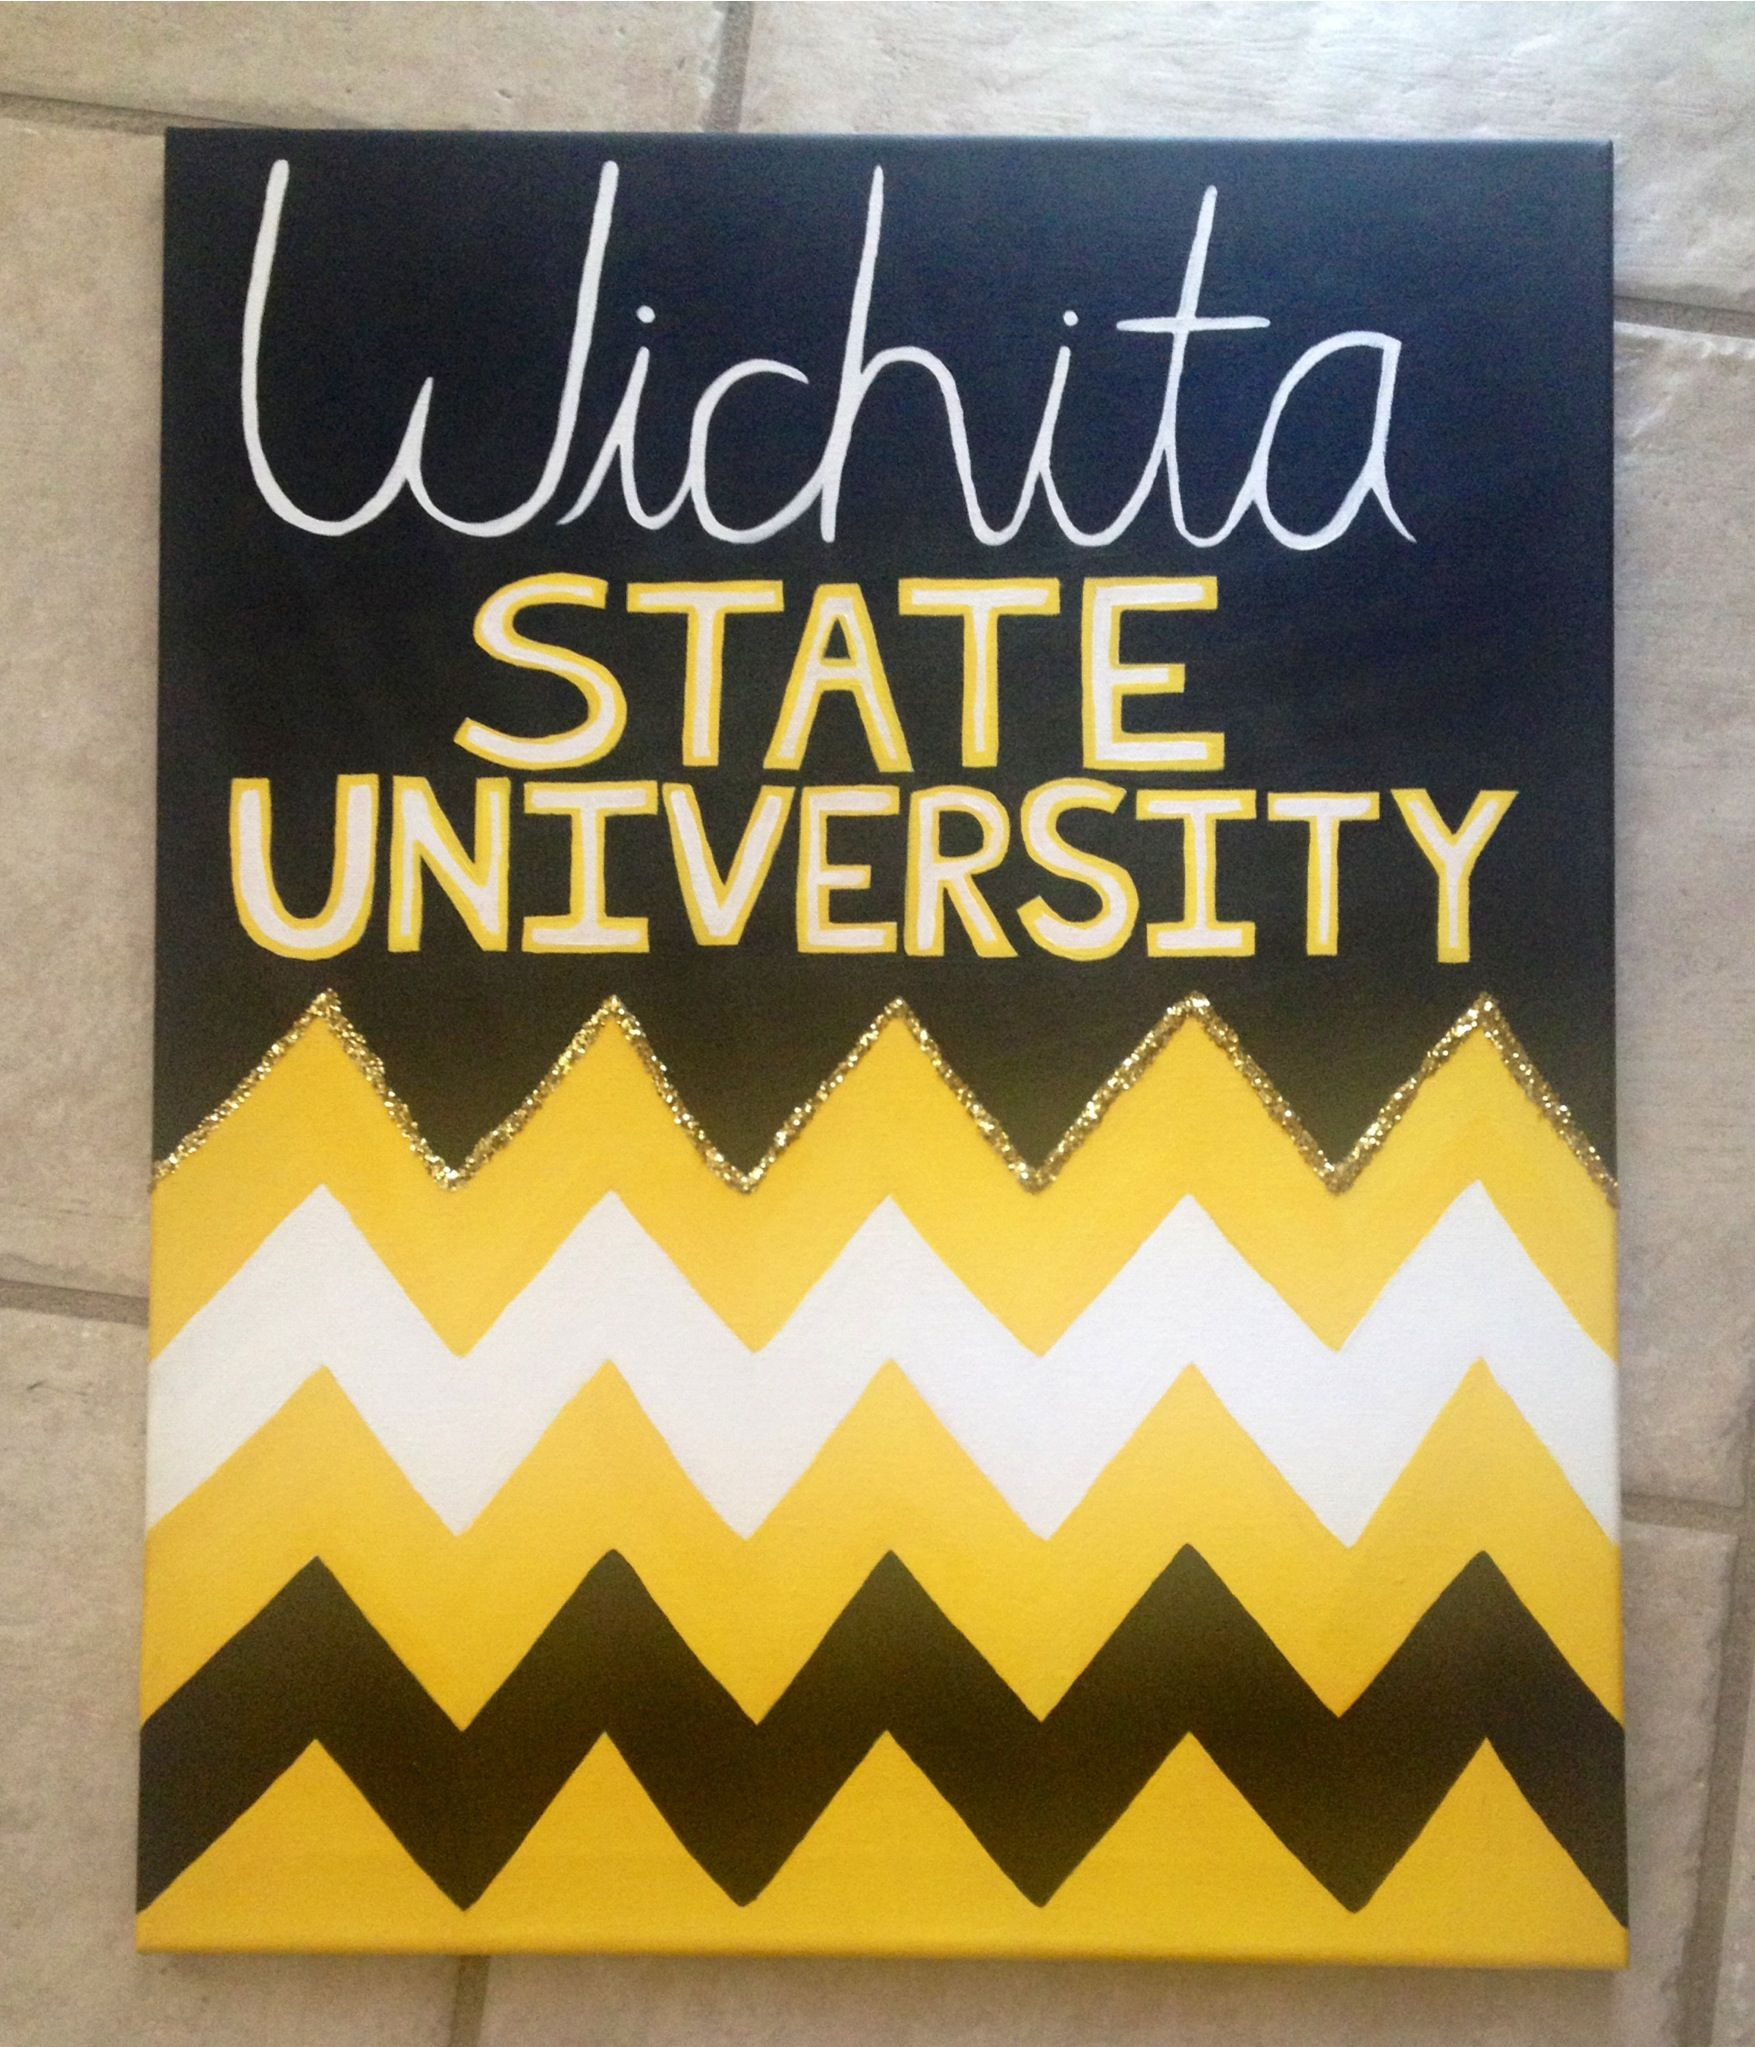 DIY canvas art to hang on dorm room wall    Change it to